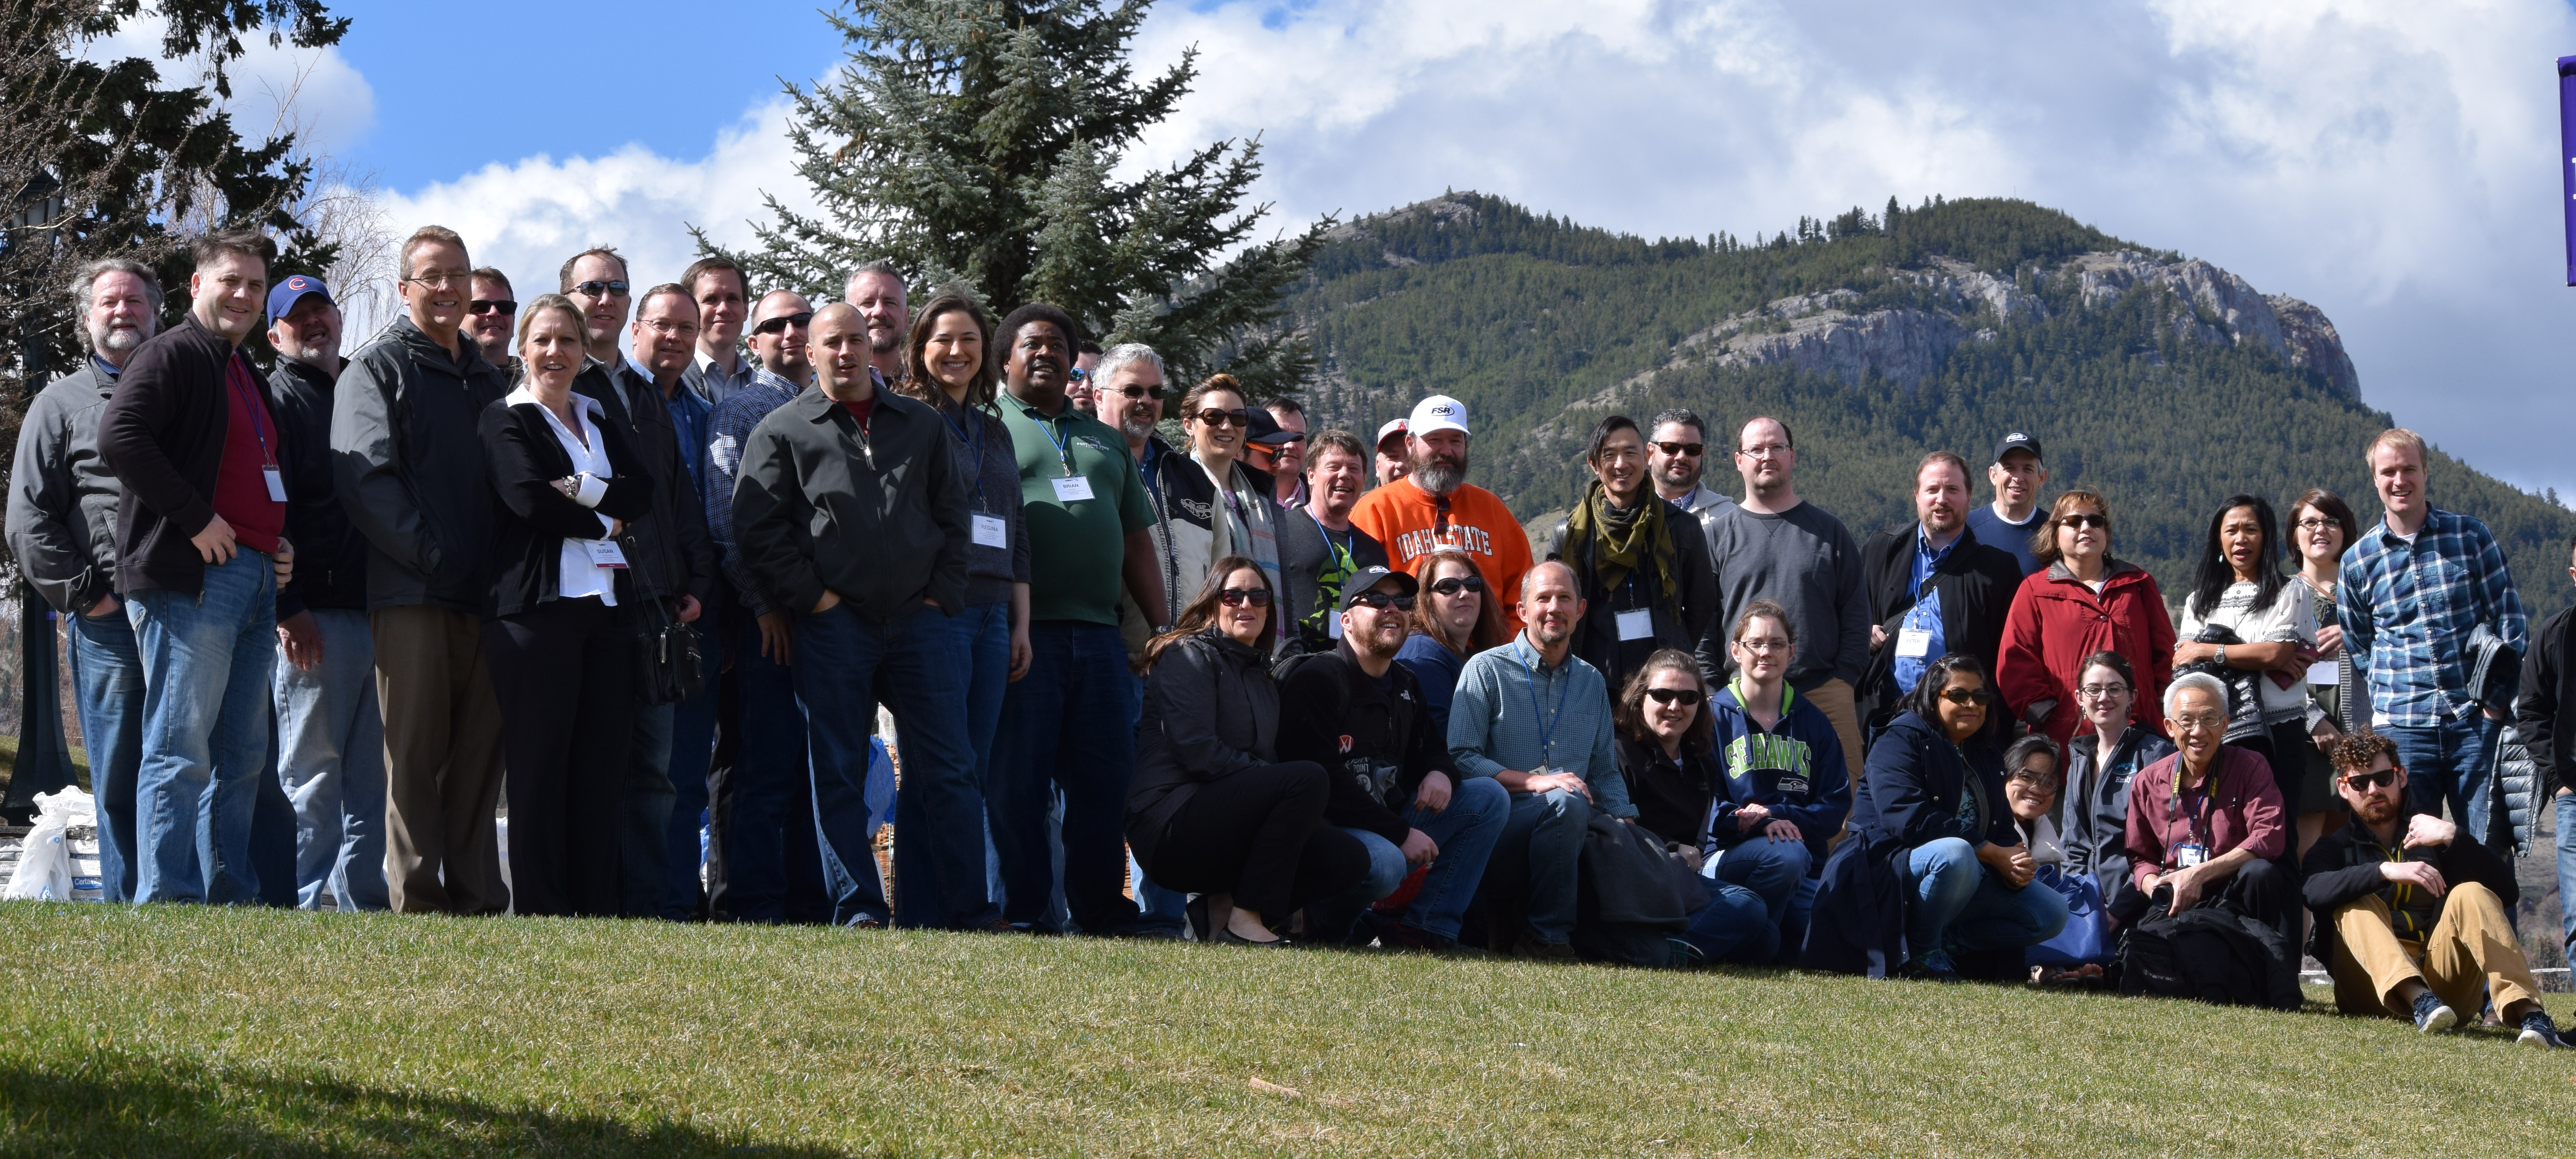 NW/MET 2017 Group Picture